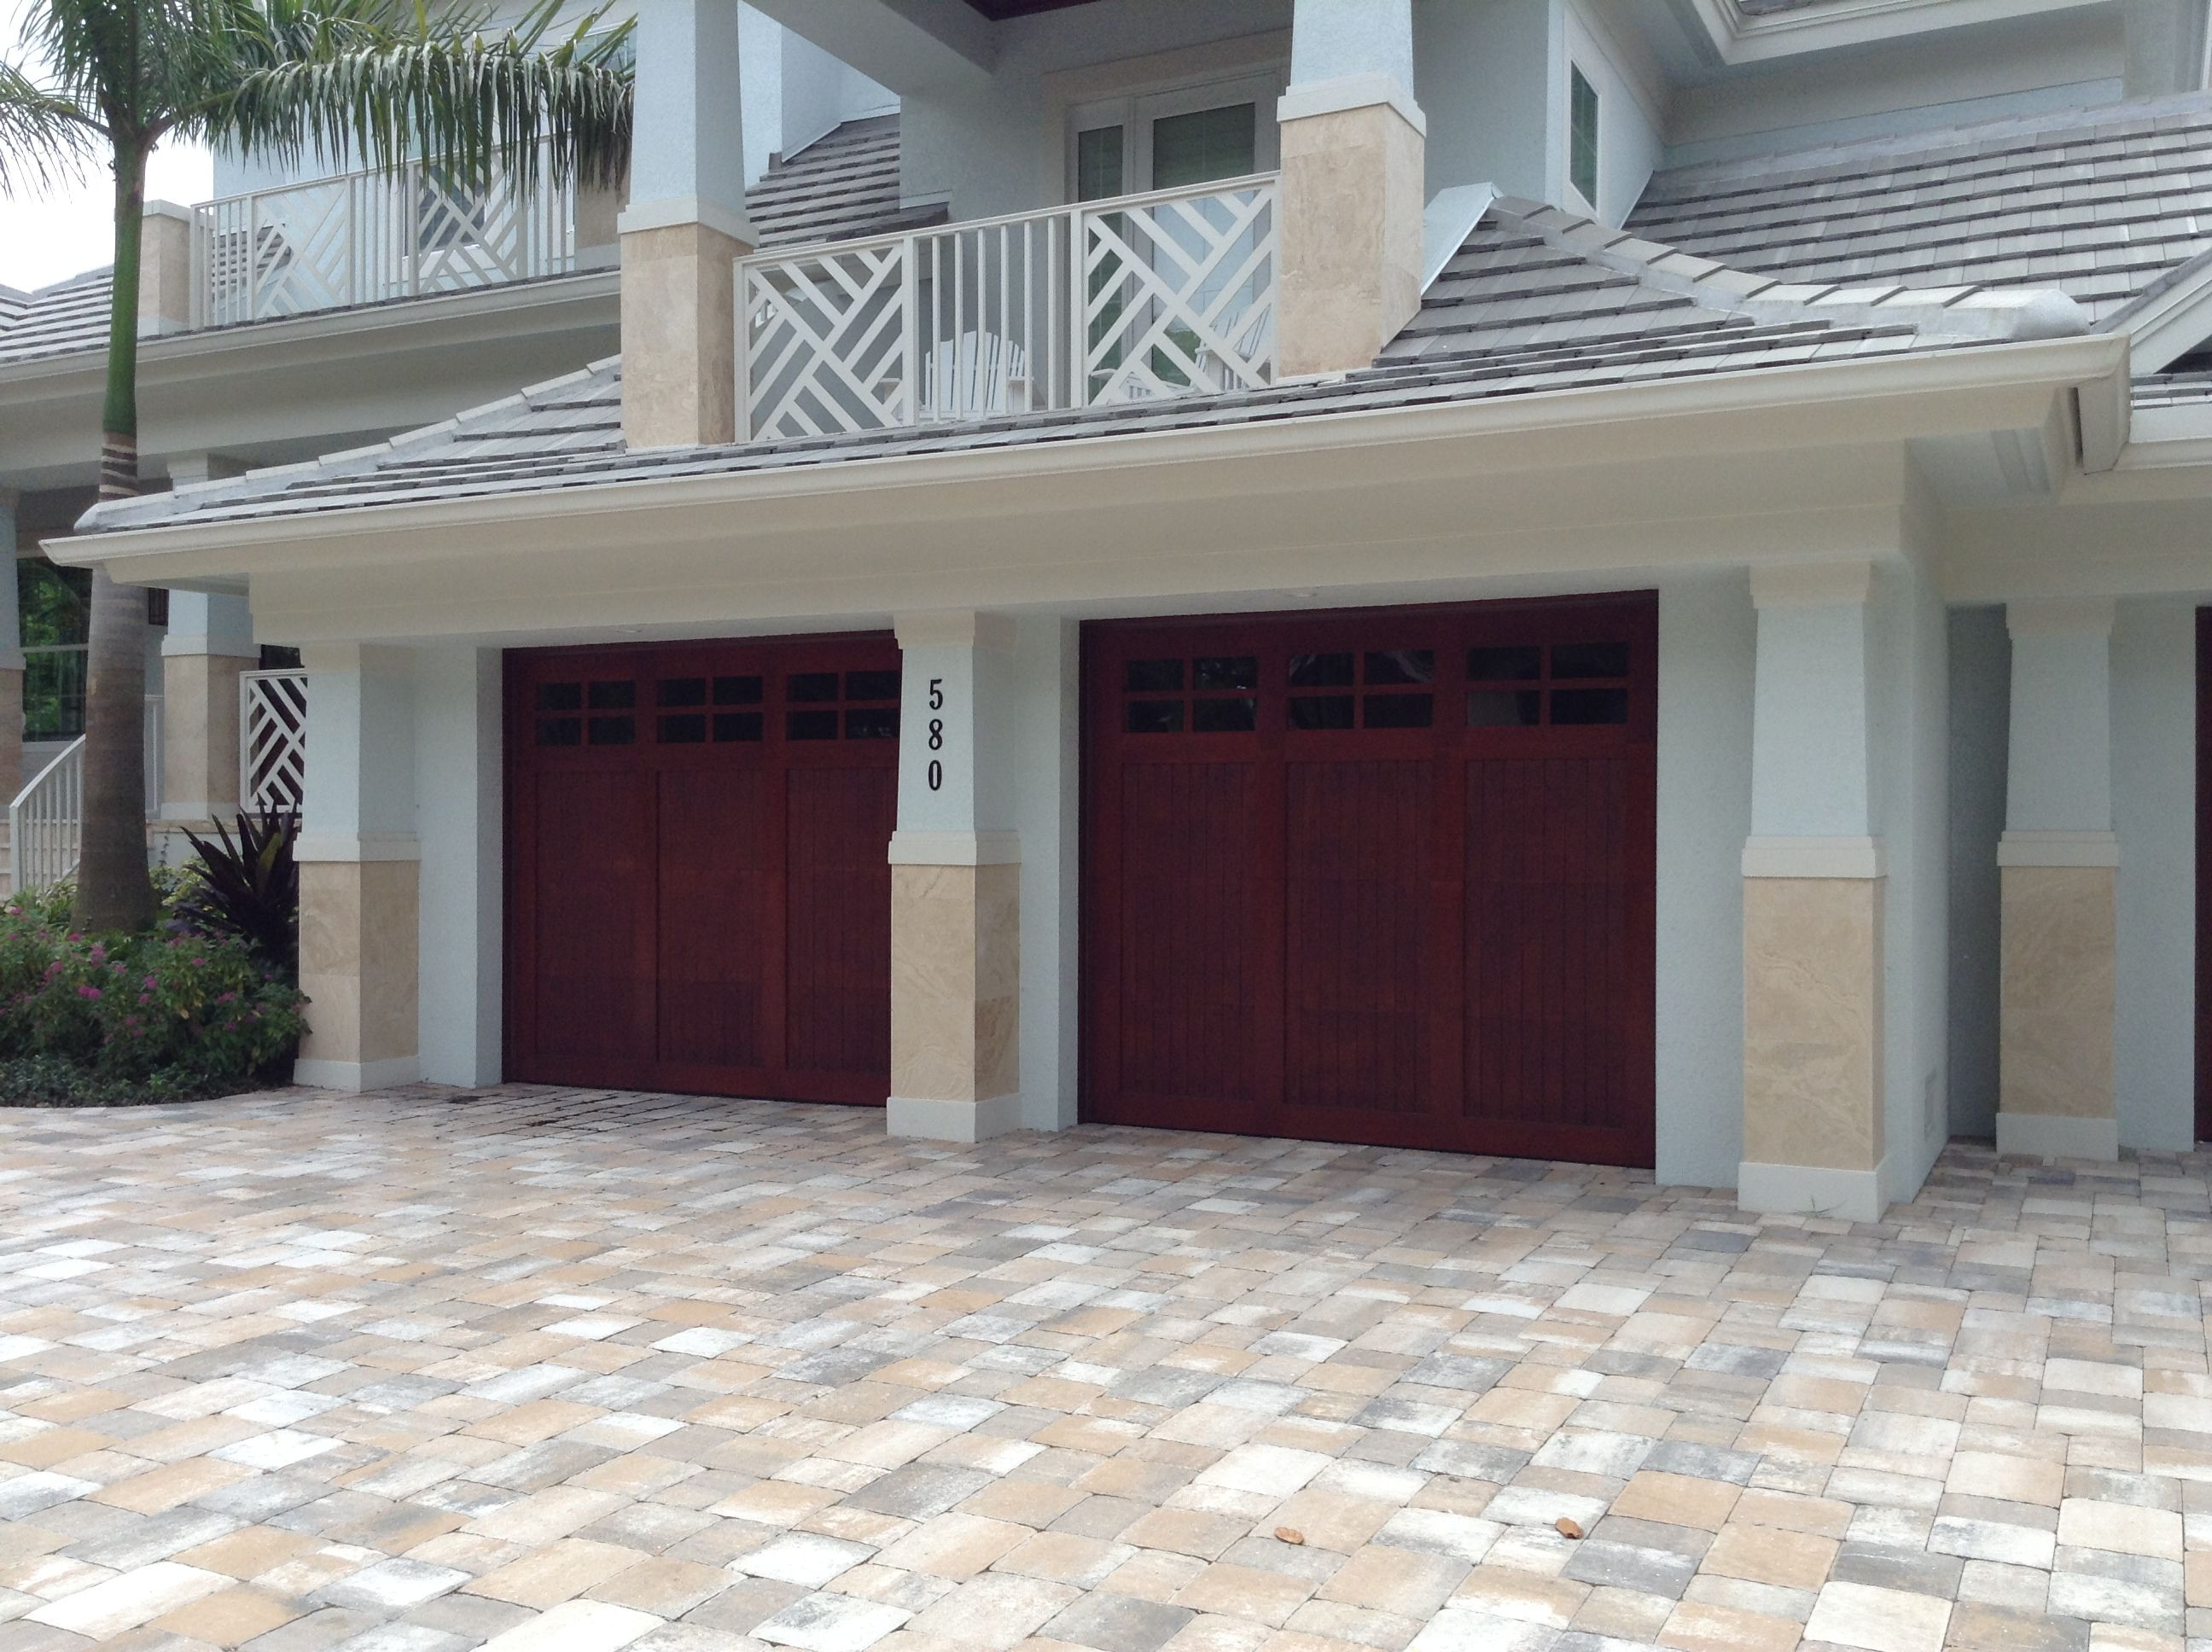 rated ideas image com doors design openers concept great door garage best asyfreedomwalk cool